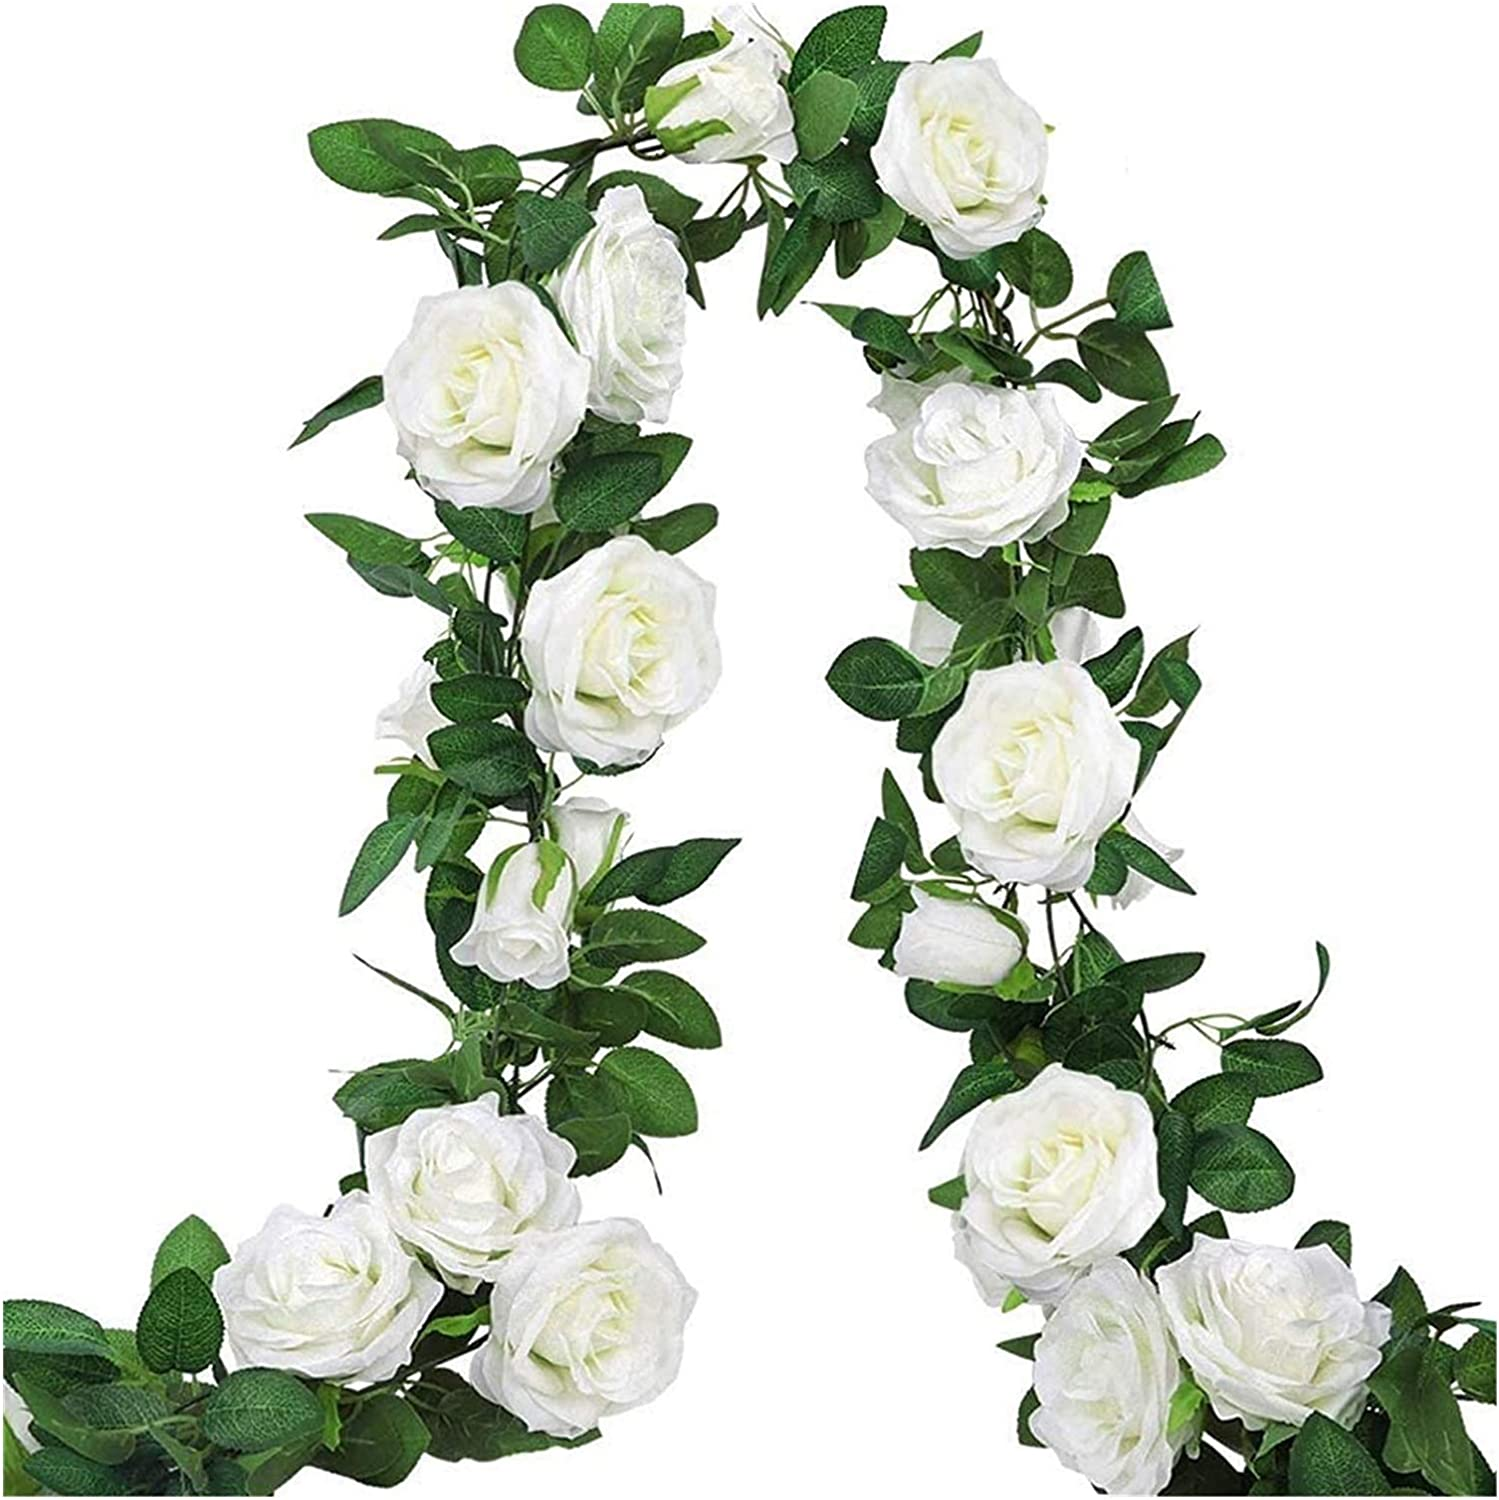 TongN Limited Special Price Artificial Plant 3 Free shipping anywhere in the nation Pieces of White Vine Flower Wreath Rose